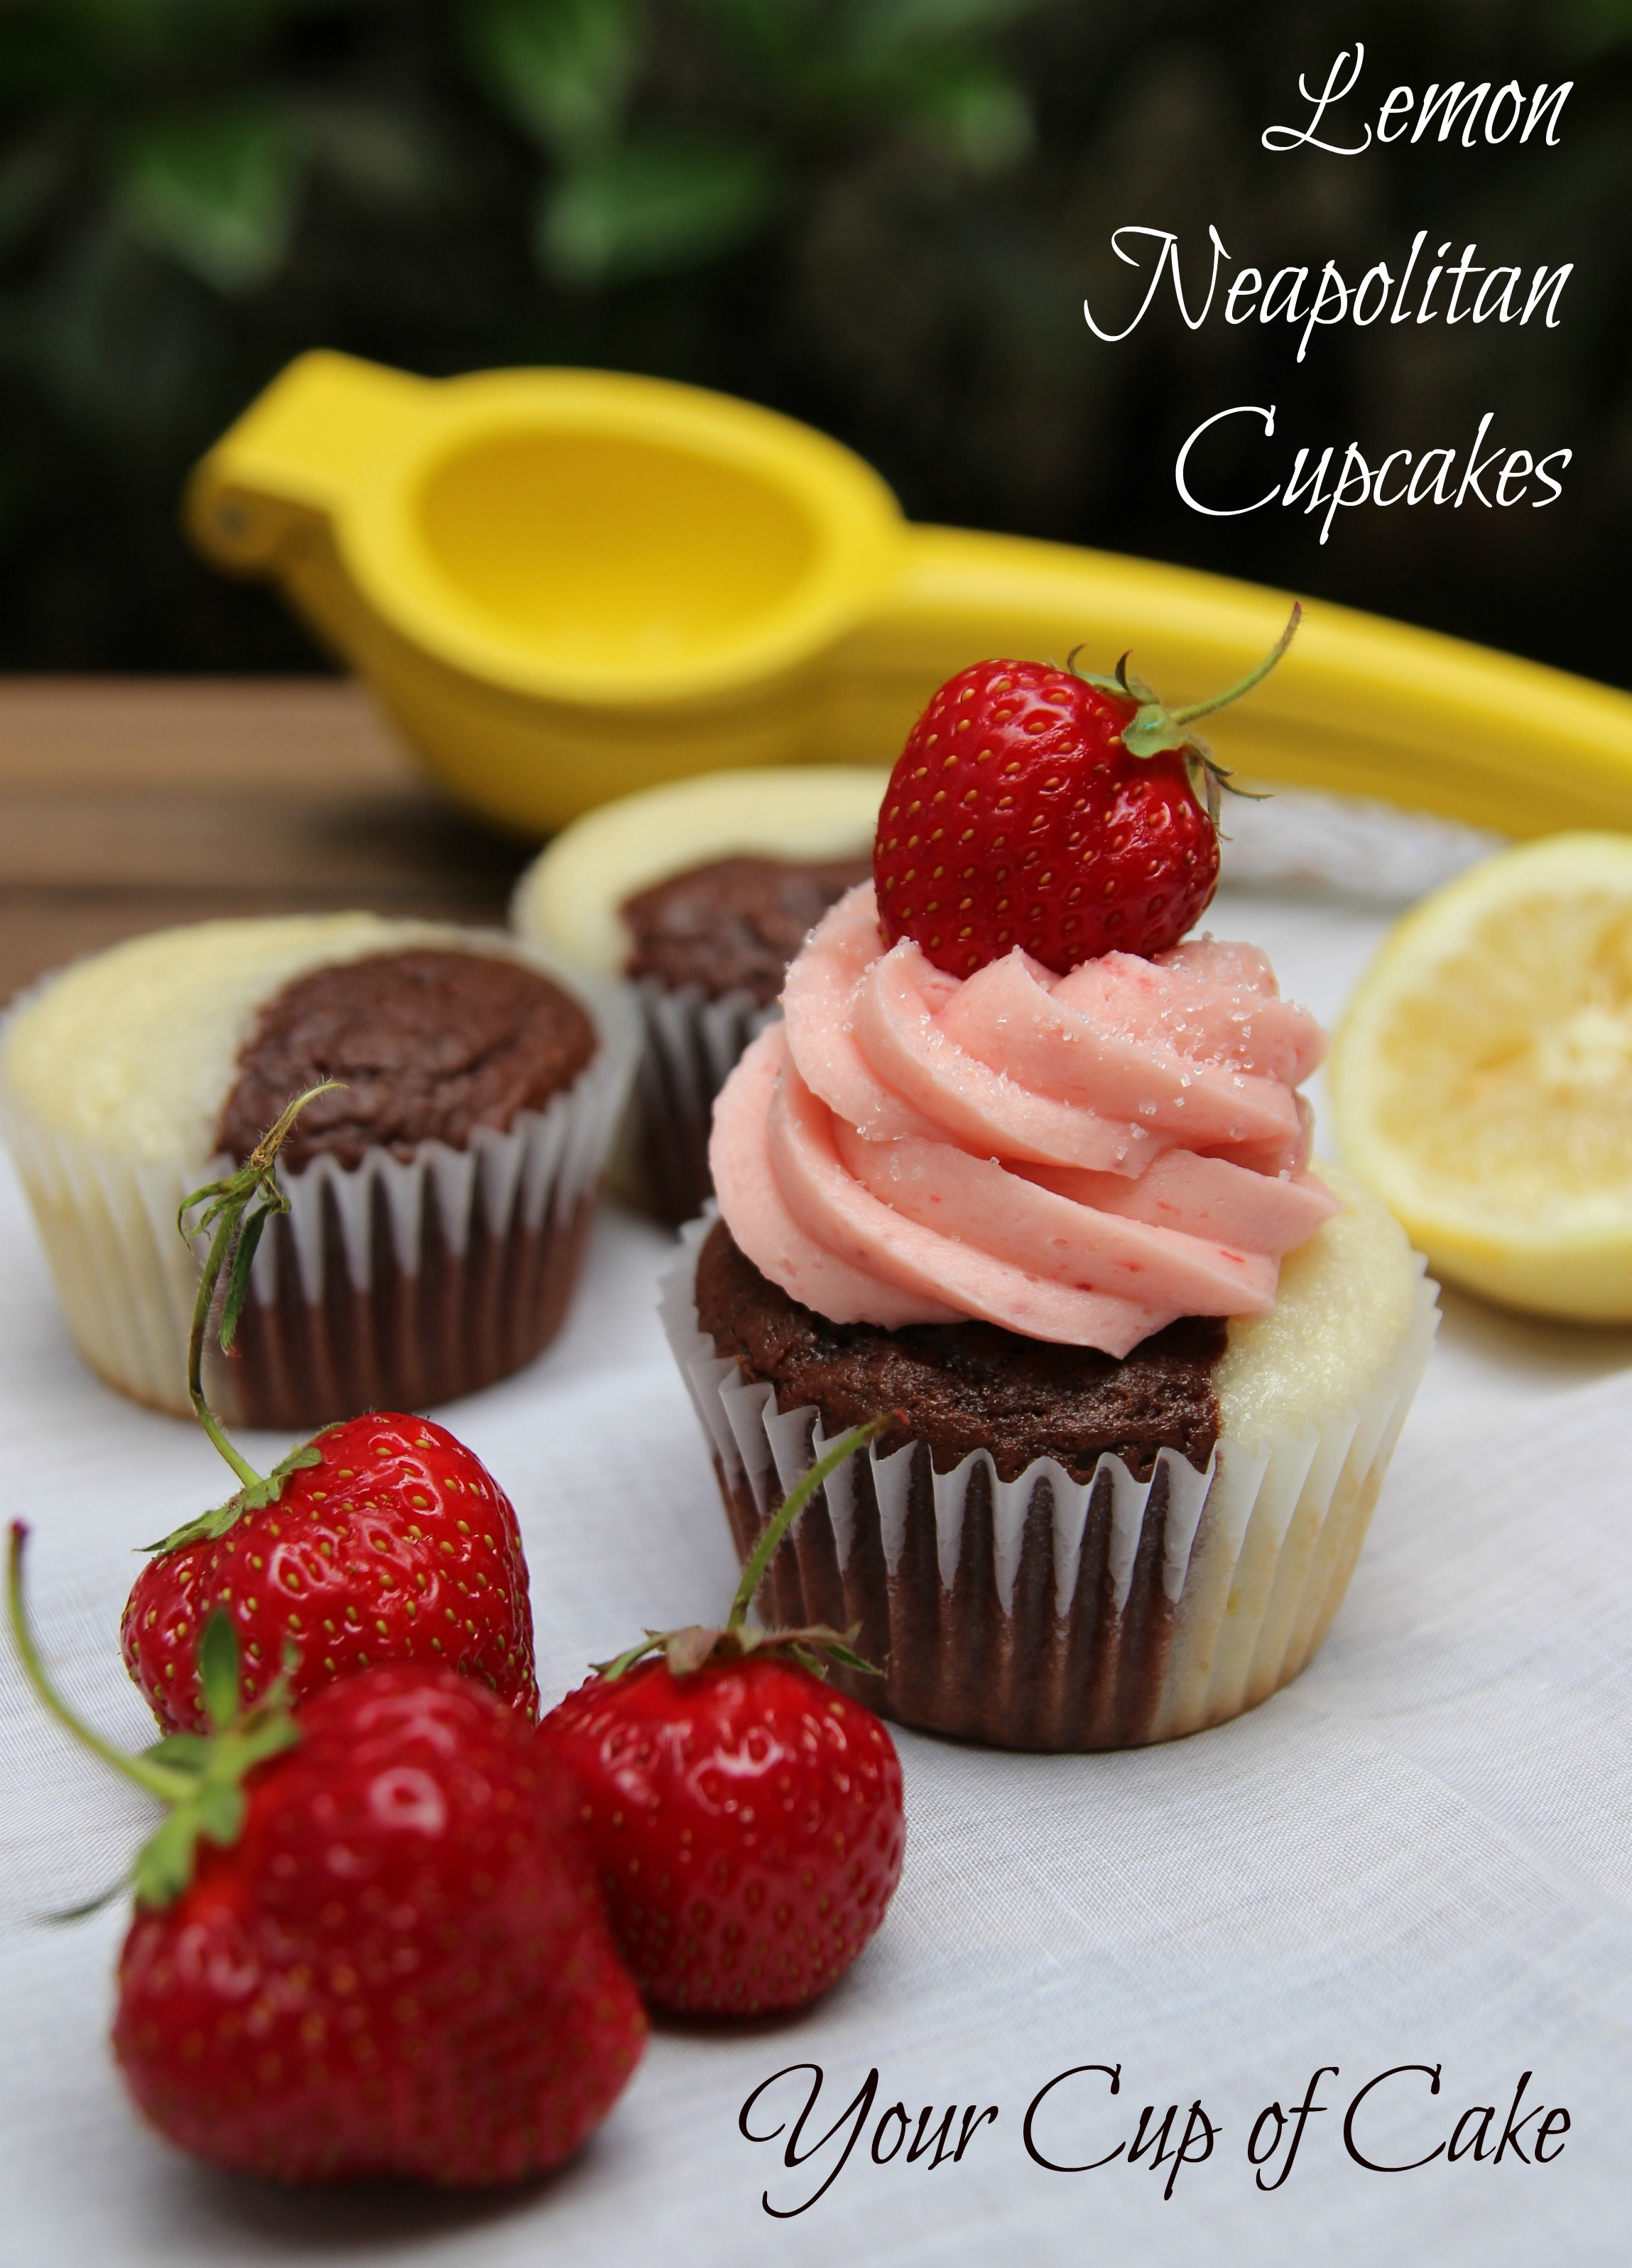 Lemon Neapolitan Cupcakes - Your Cup of Cake